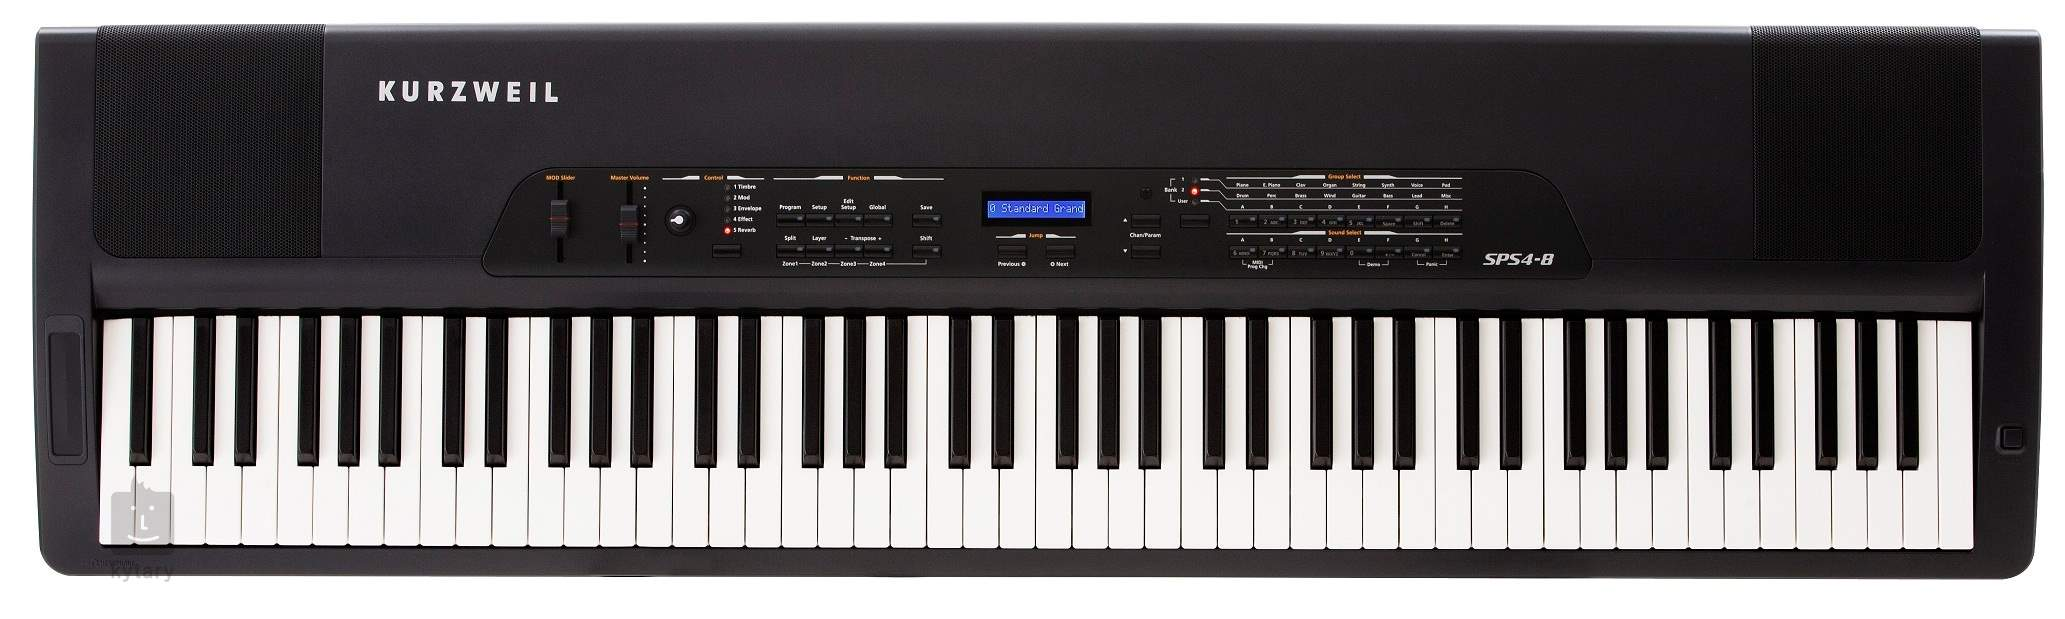 kurzweil sps4 8 portable digital stage piano. Black Bedroom Furniture Sets. Home Design Ideas